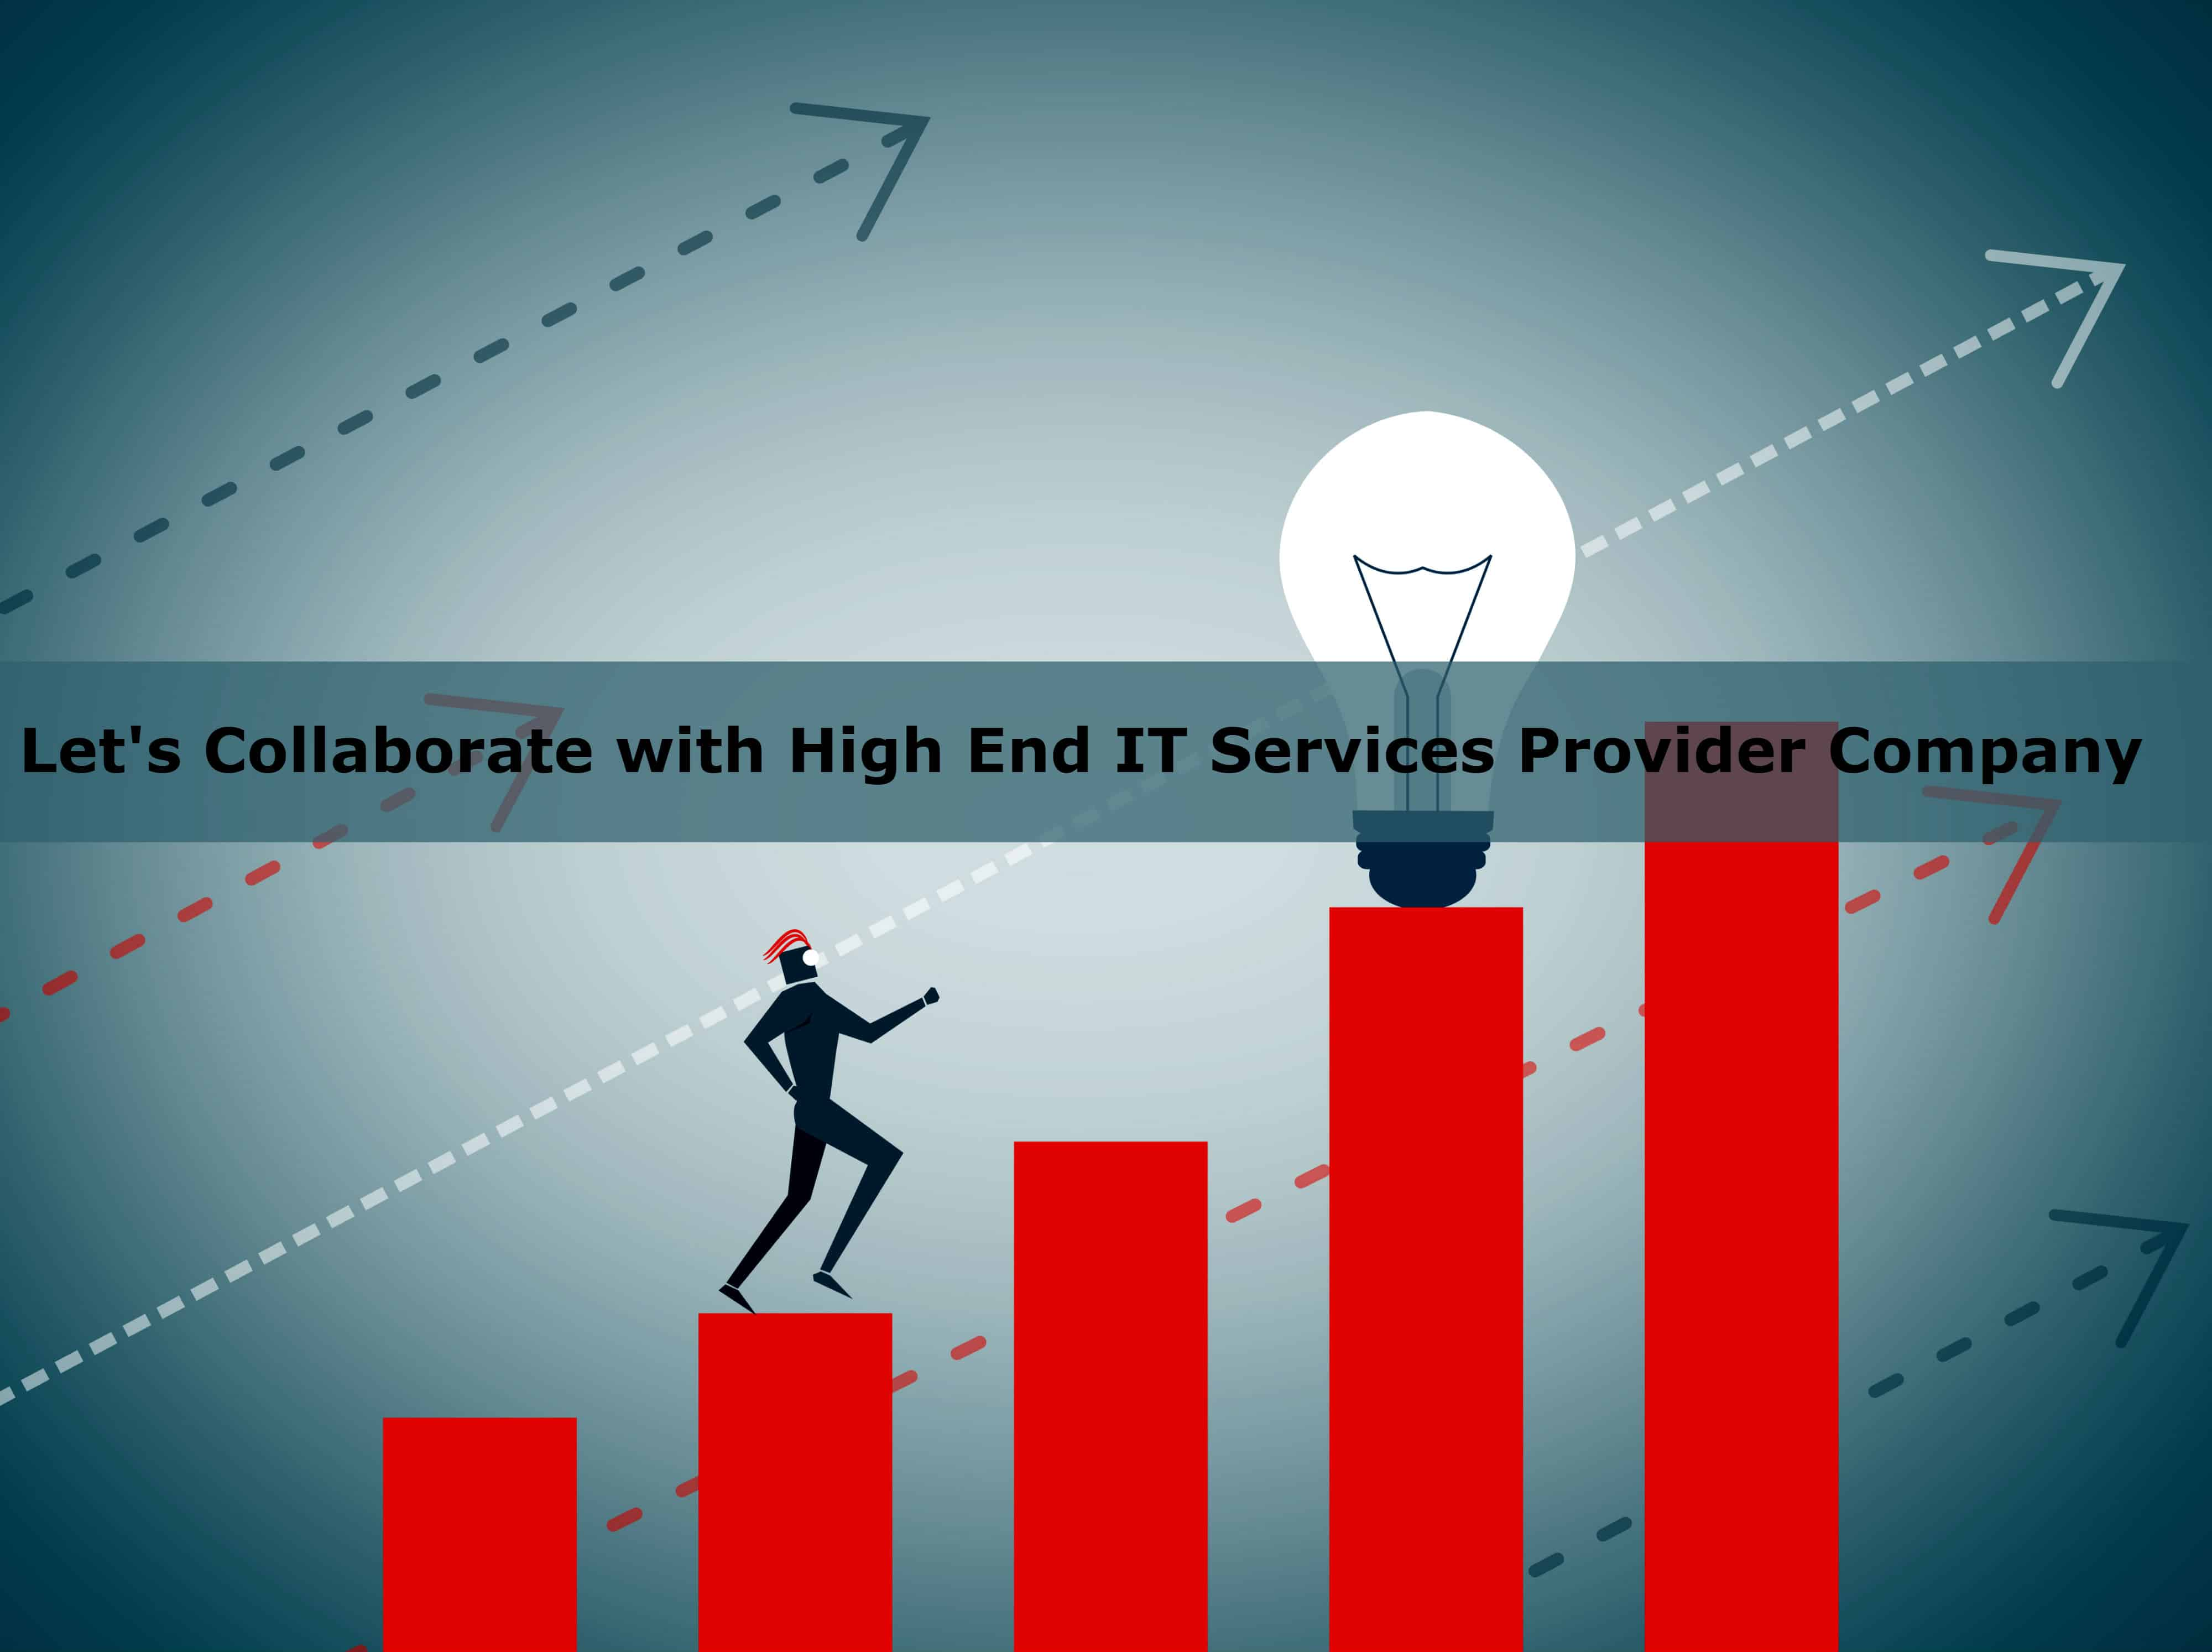 Lets Collaborate with High-End IT Services Provider Company